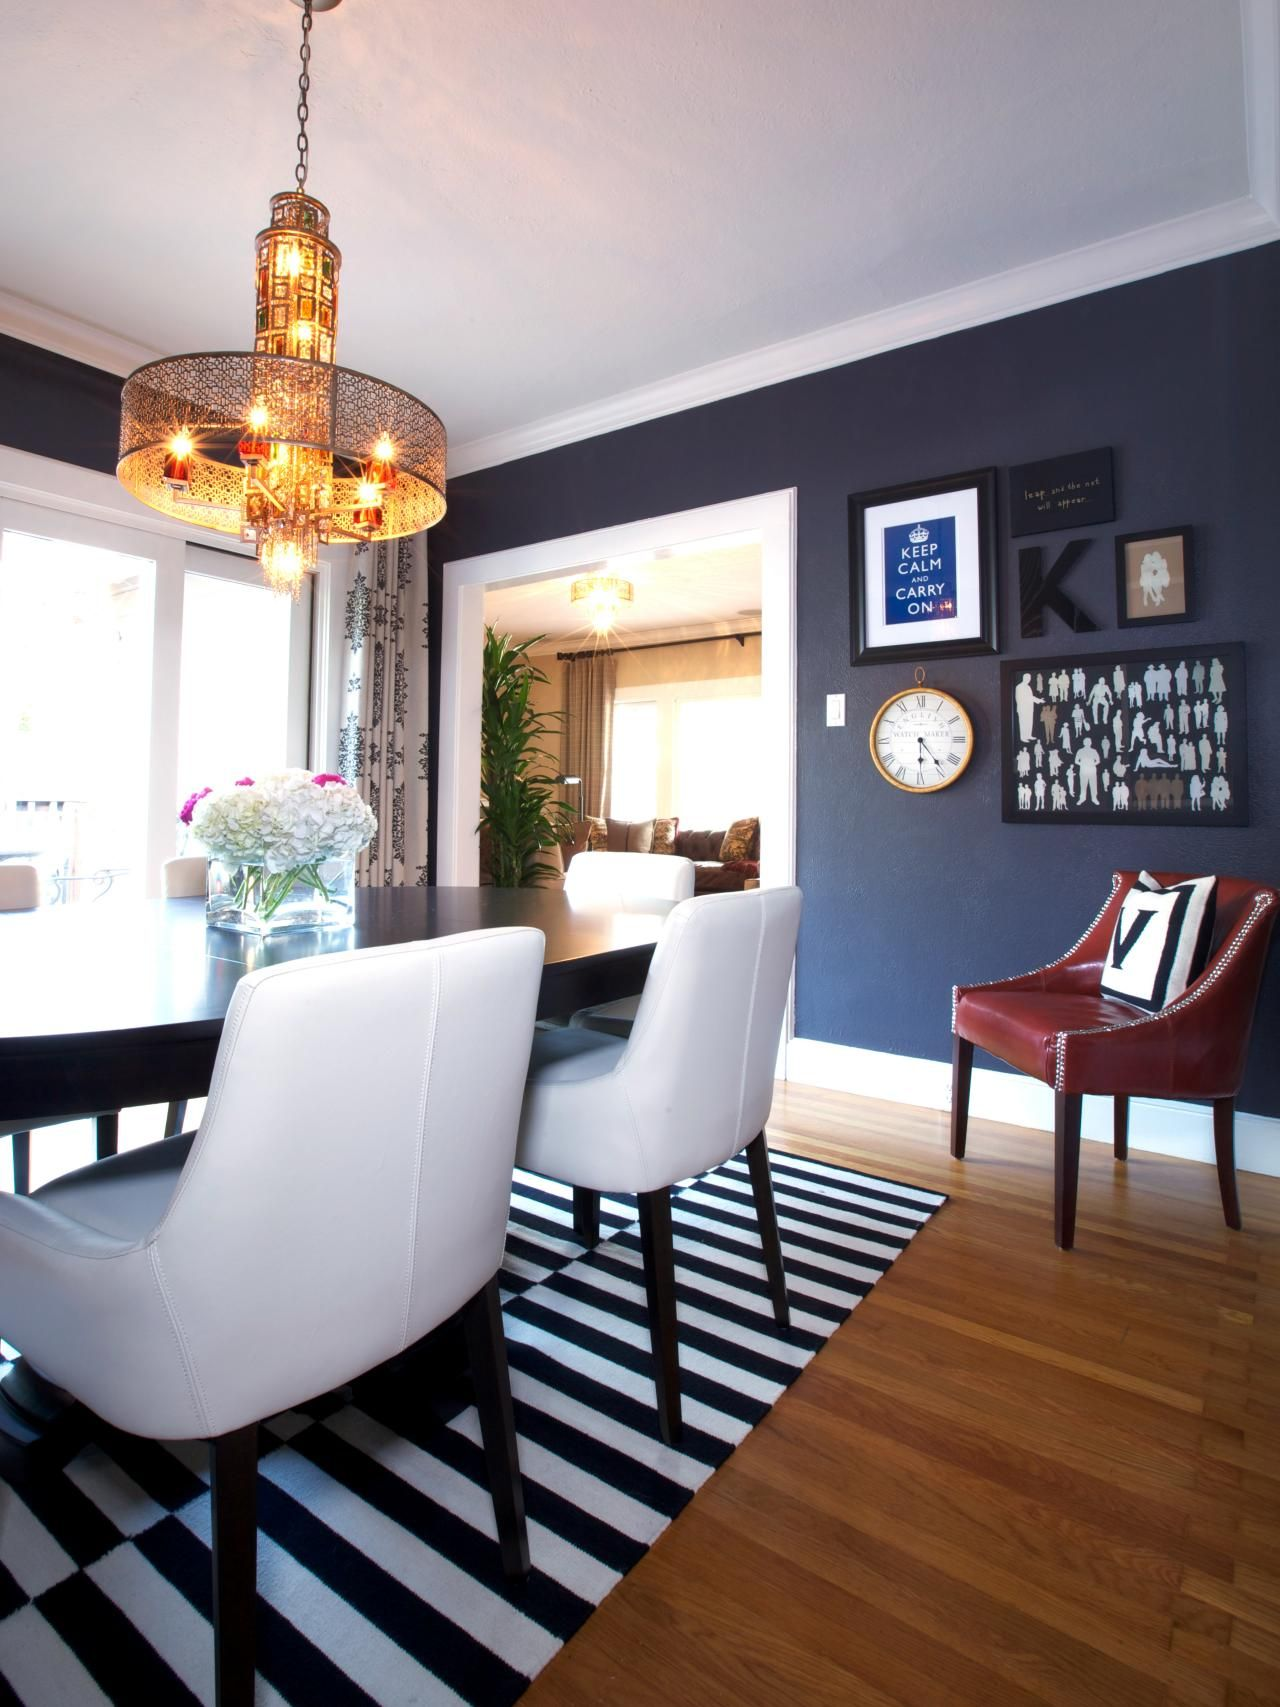 A Dining Room With Blue Suede Walls Features A Black And White Striped Rug,  Red